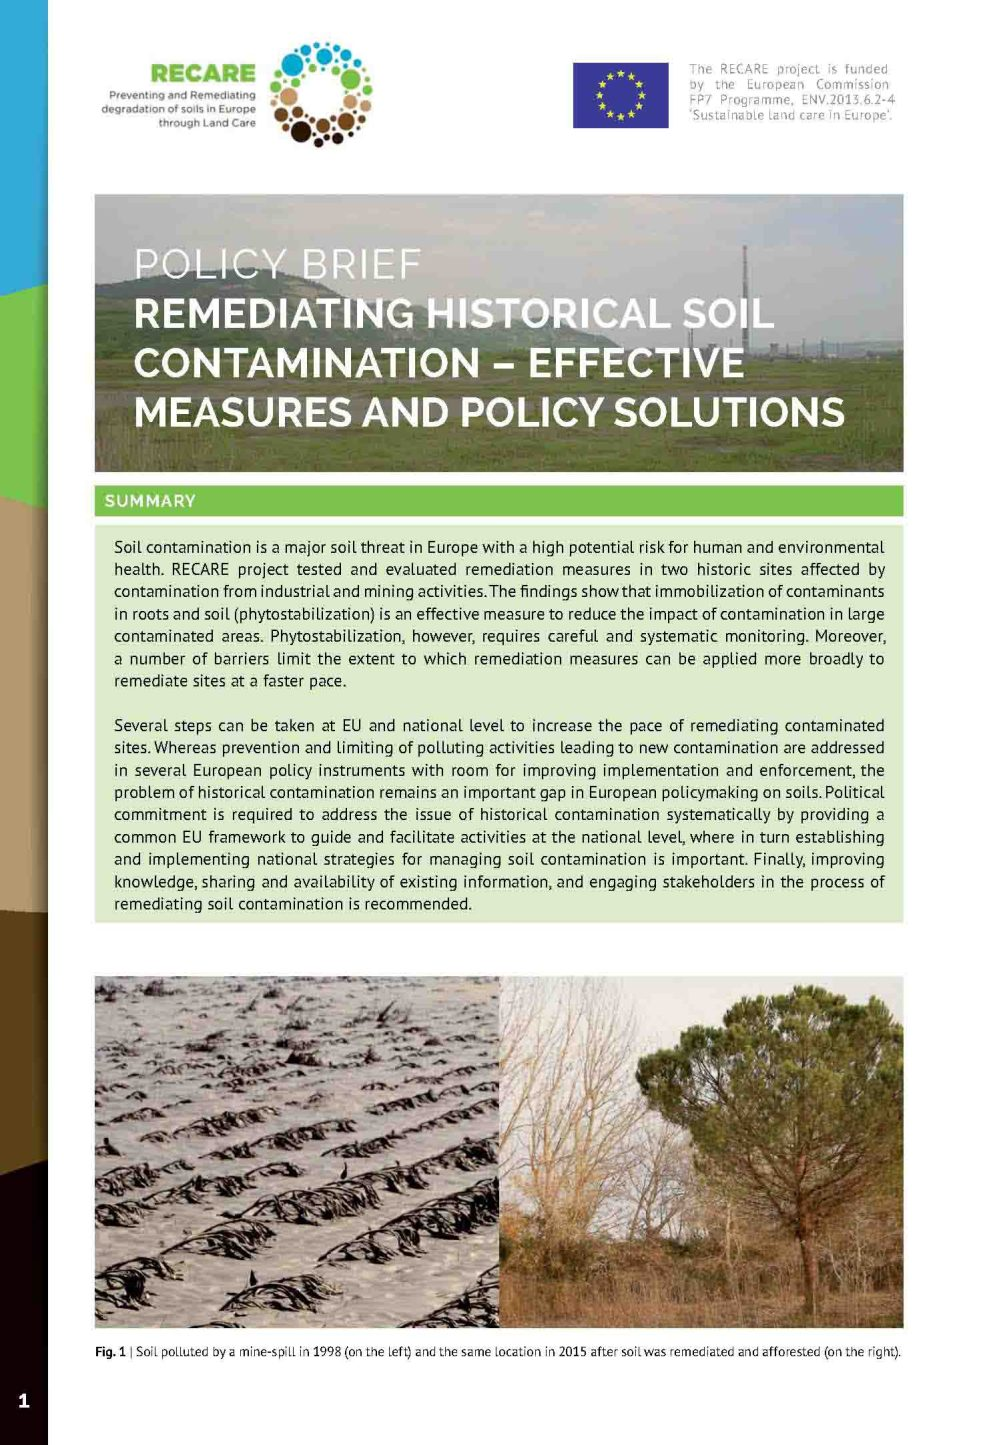 medium resolution of  study sites guadiamar spain and cop a mic romania and other previous studies a set of recommendations for contaminated soils in europe have been